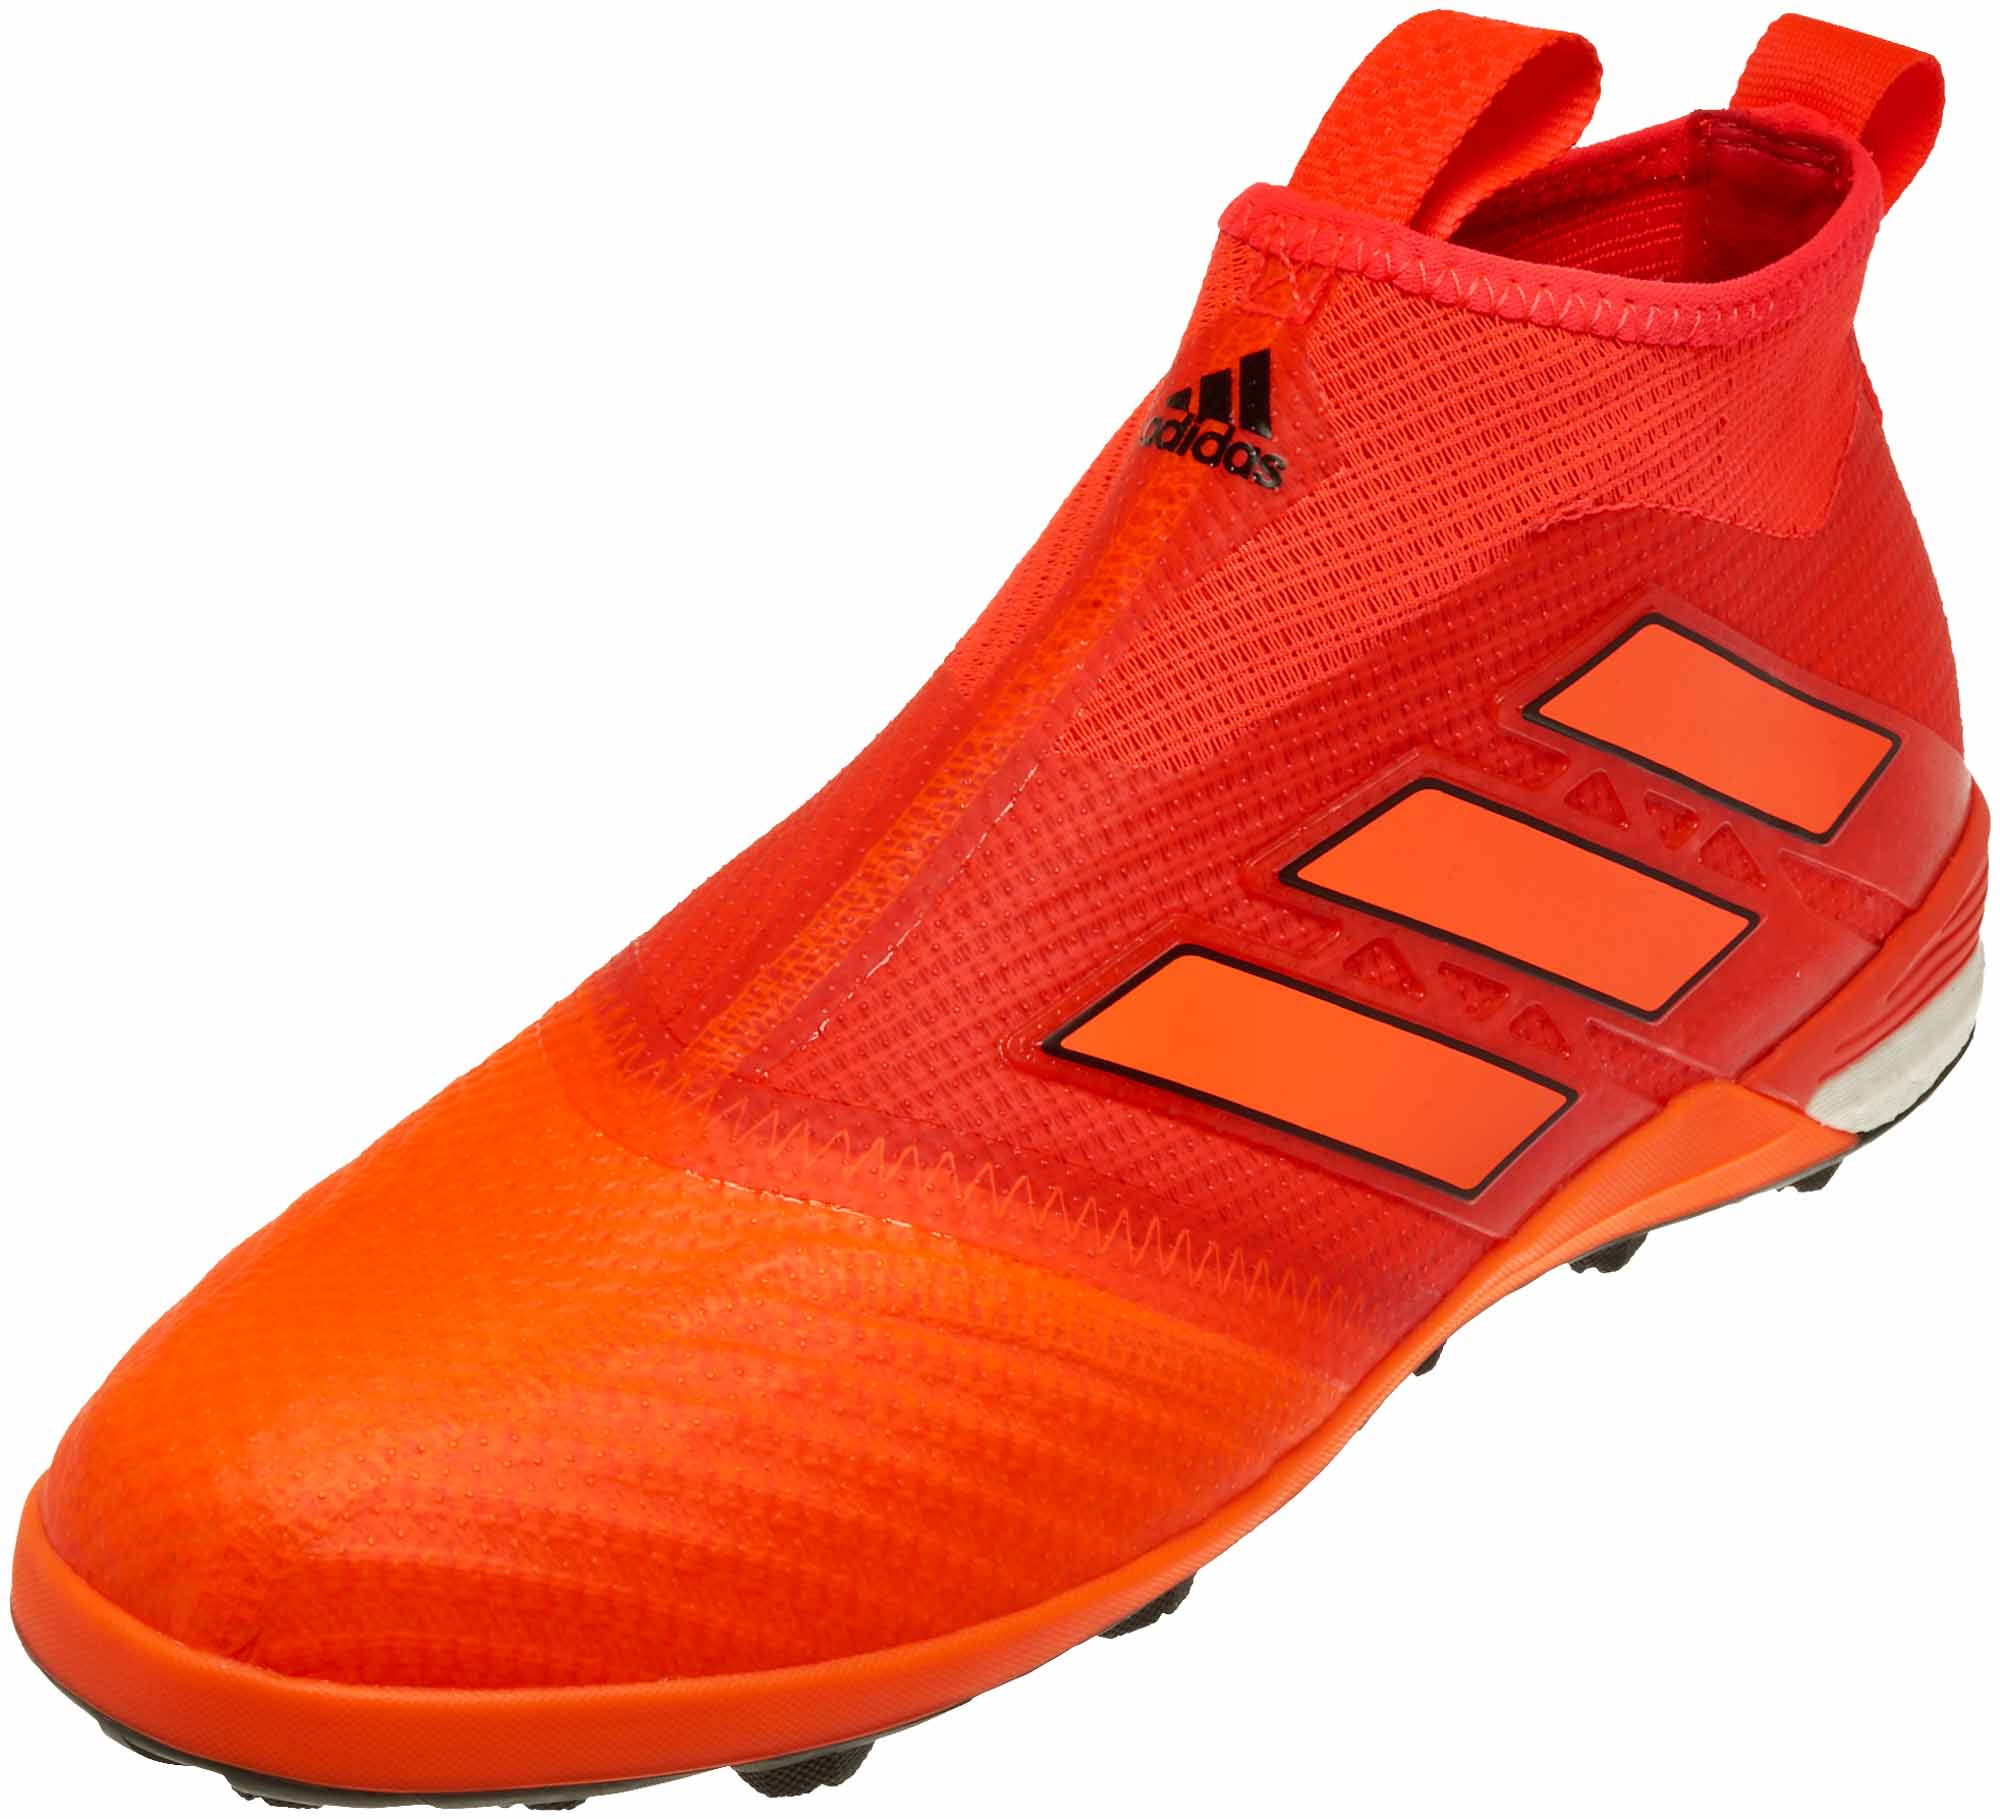 new product 29db7 3de12 adidas ACE Tango 17 Purecontrol TF - Solar Red & Solar Orange